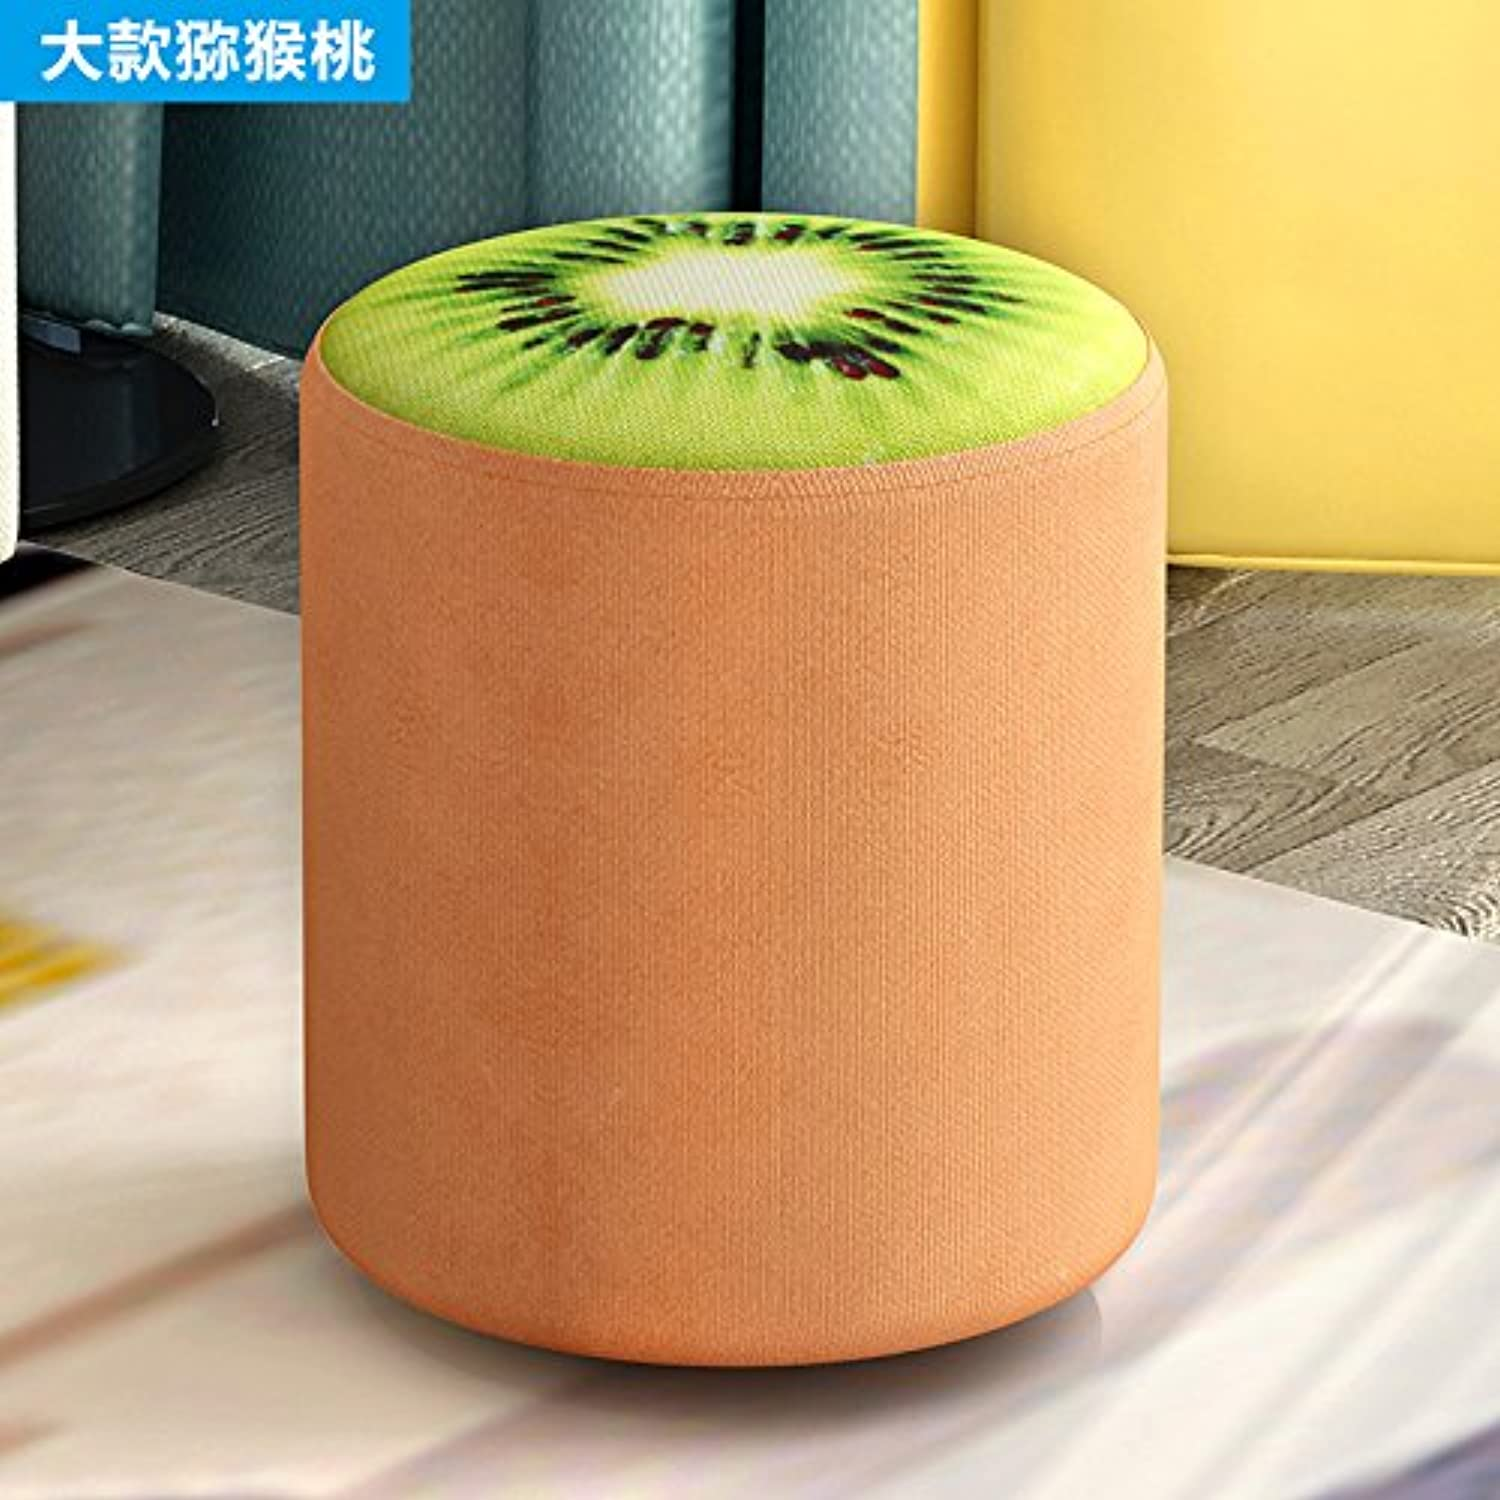 Dana Carrie Stool Home Fruit of The shoes Bench Benches Sofa Chair Wooden Chair Fabrics stool Seating, Kiwi 28  27CM